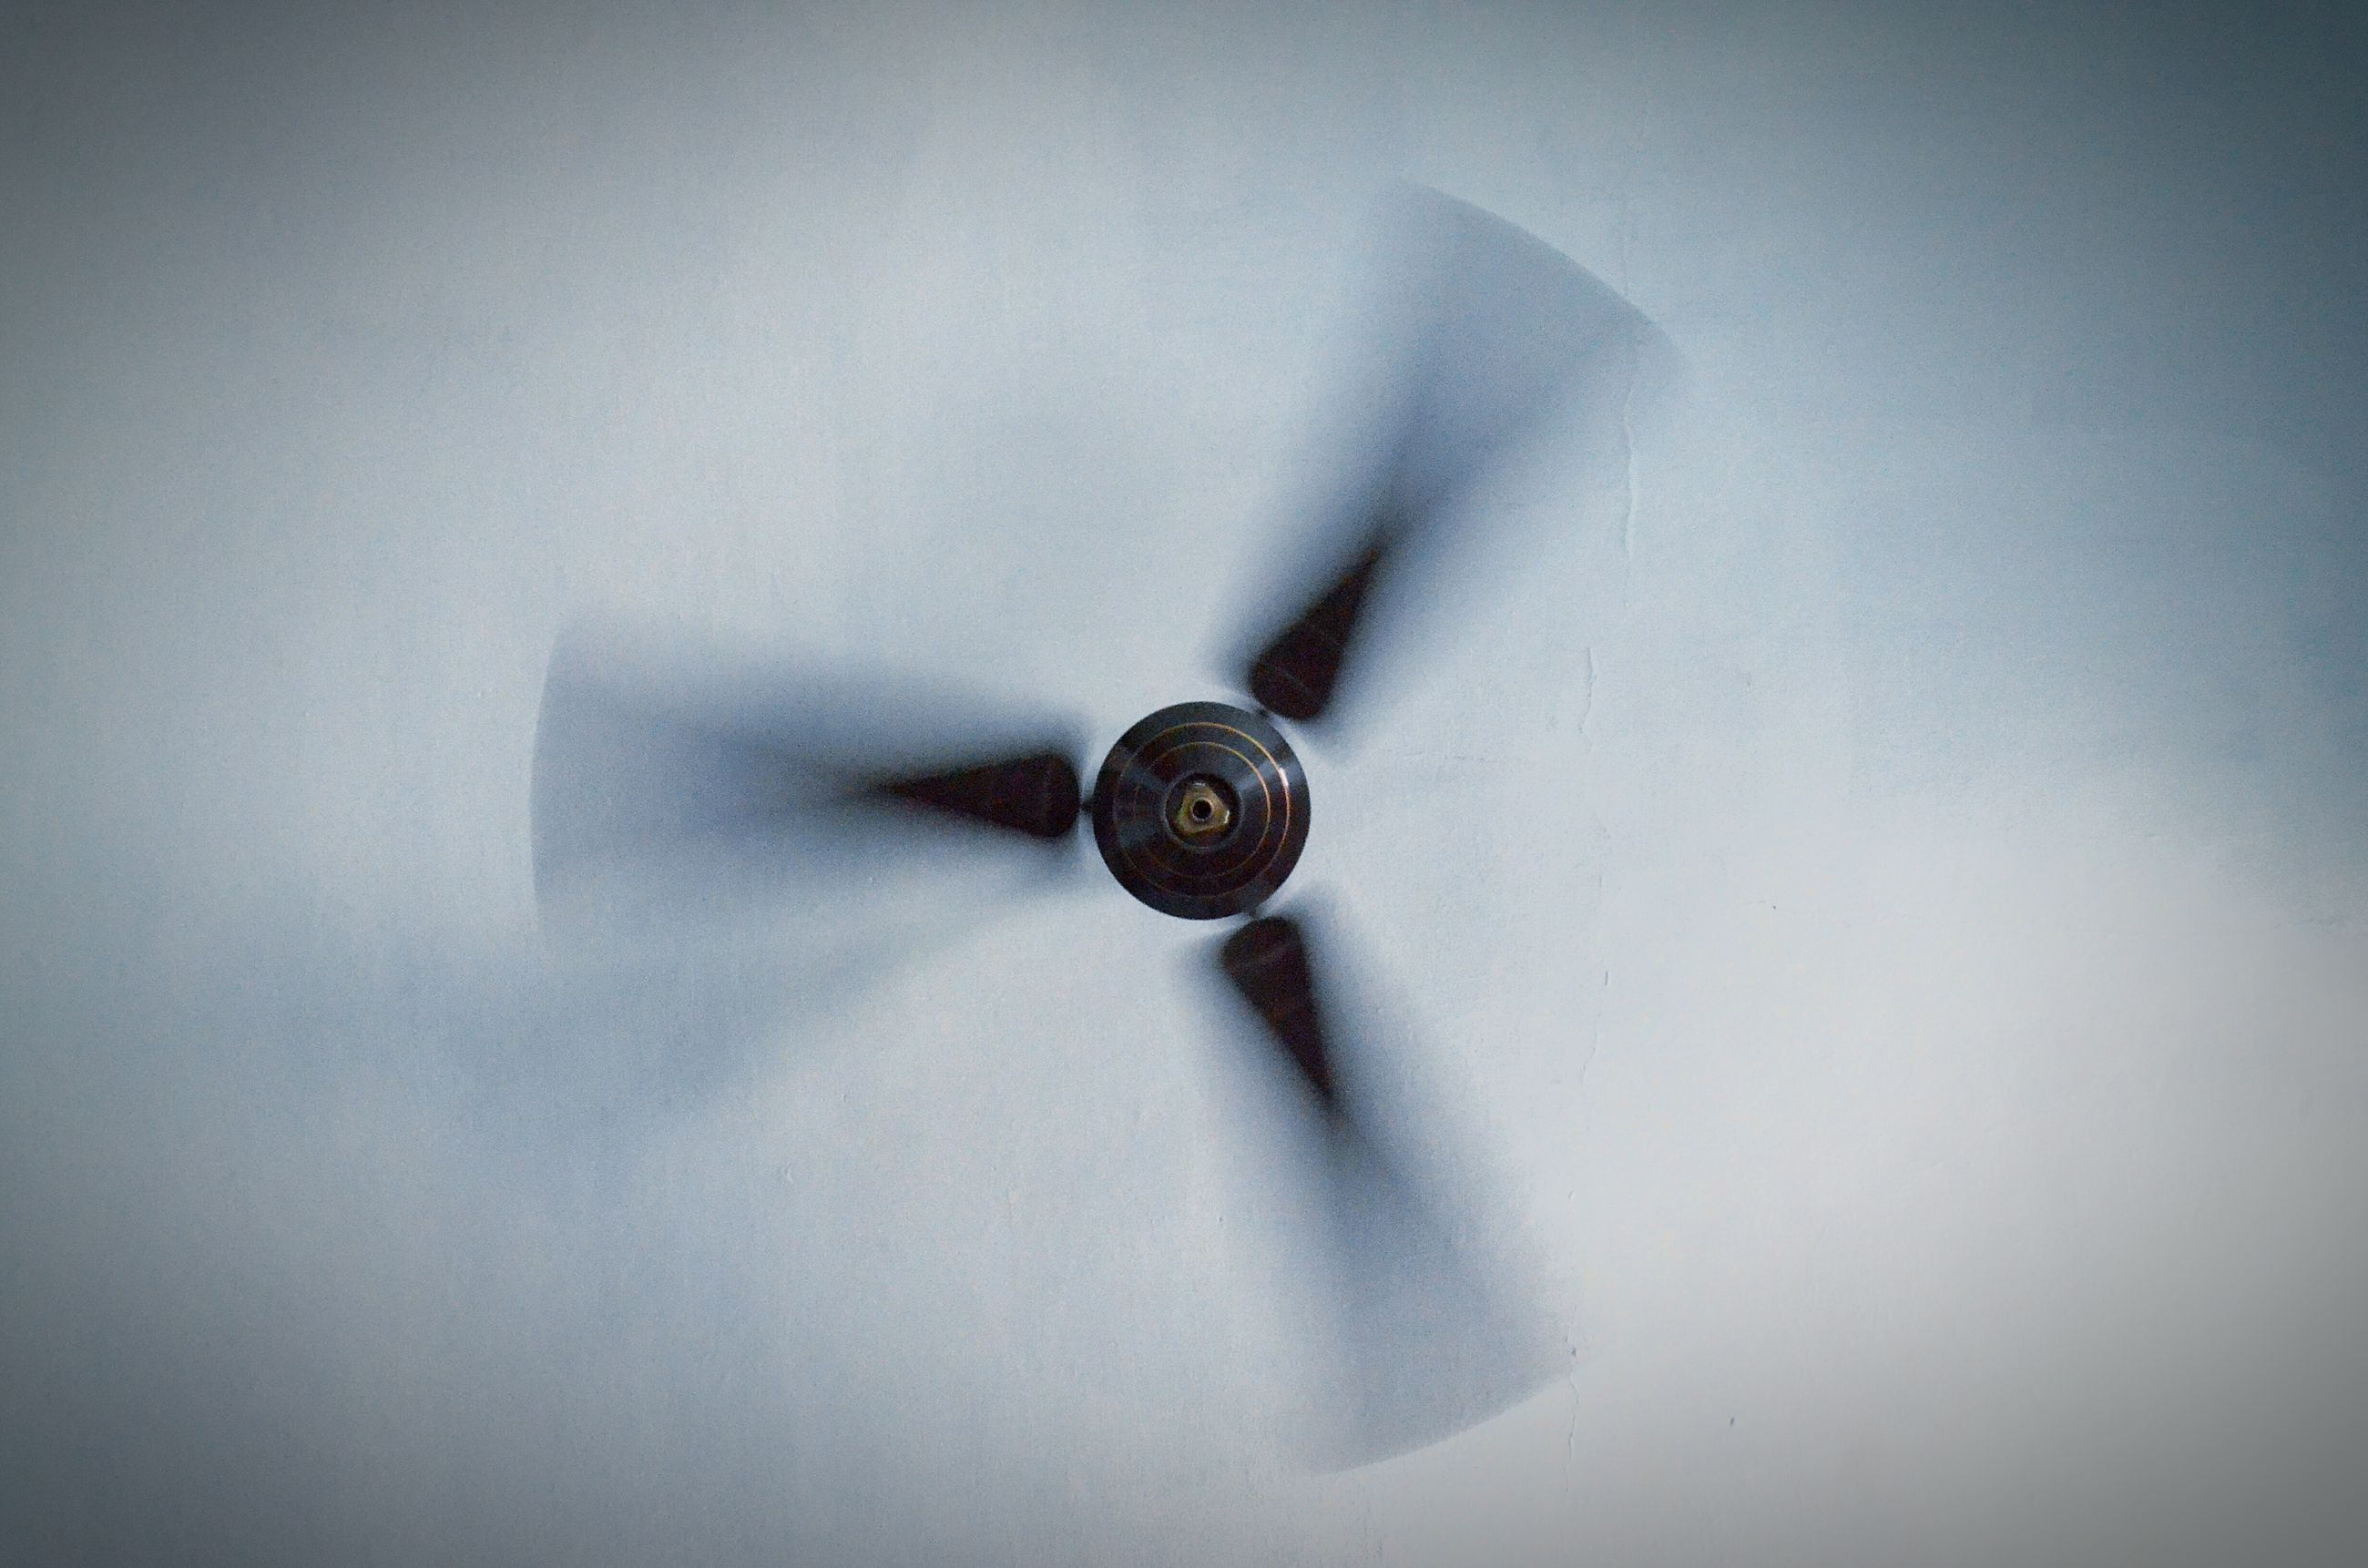 ceiling fan, electricity, electric fan, fan, ceiling, home interior, indoors, white color, technology, motion, blurred motion, low angle view, no people, close-up, day